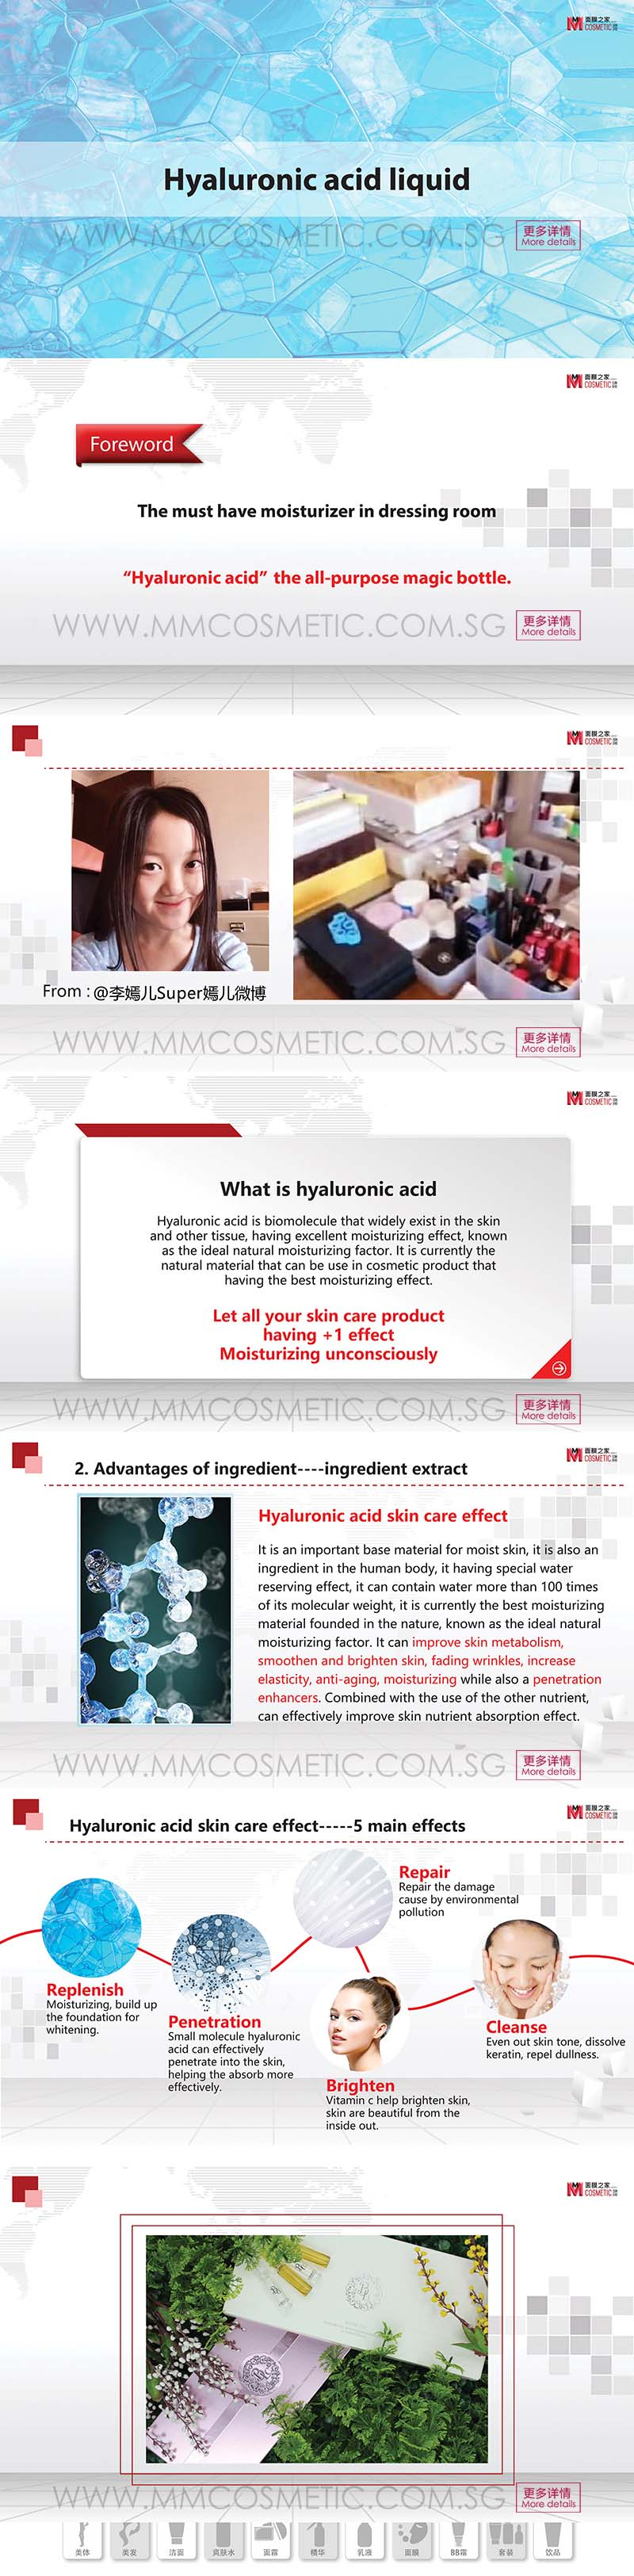 Johor Hyaluronic Acid Liquid ODM / OEM from MM COSMETIC ...